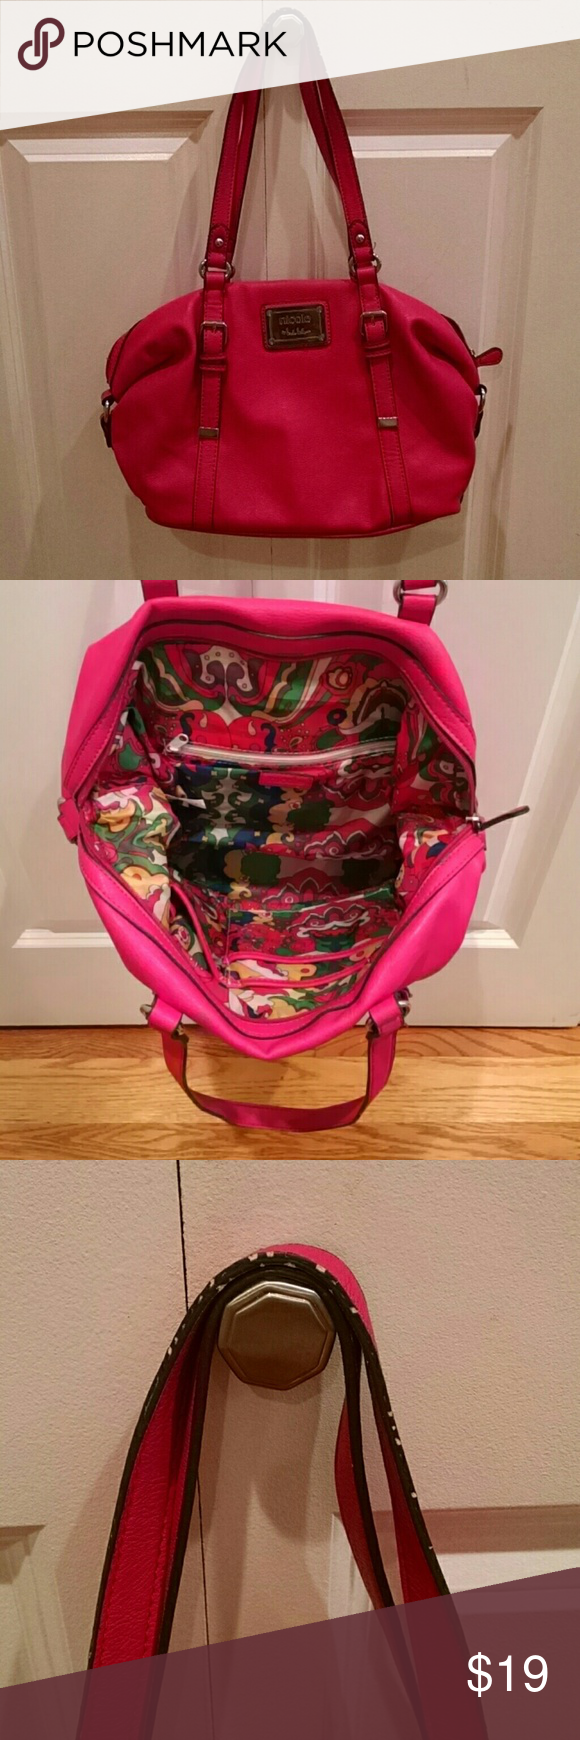 """Pink Nicole Miller bag Beautiful, pink bag with silver hardware. Lots of room and only marks are on one of the handles, see pic. Approx 16""""Lx10""""H Nicole Miller Bags Shoulder Bags"""